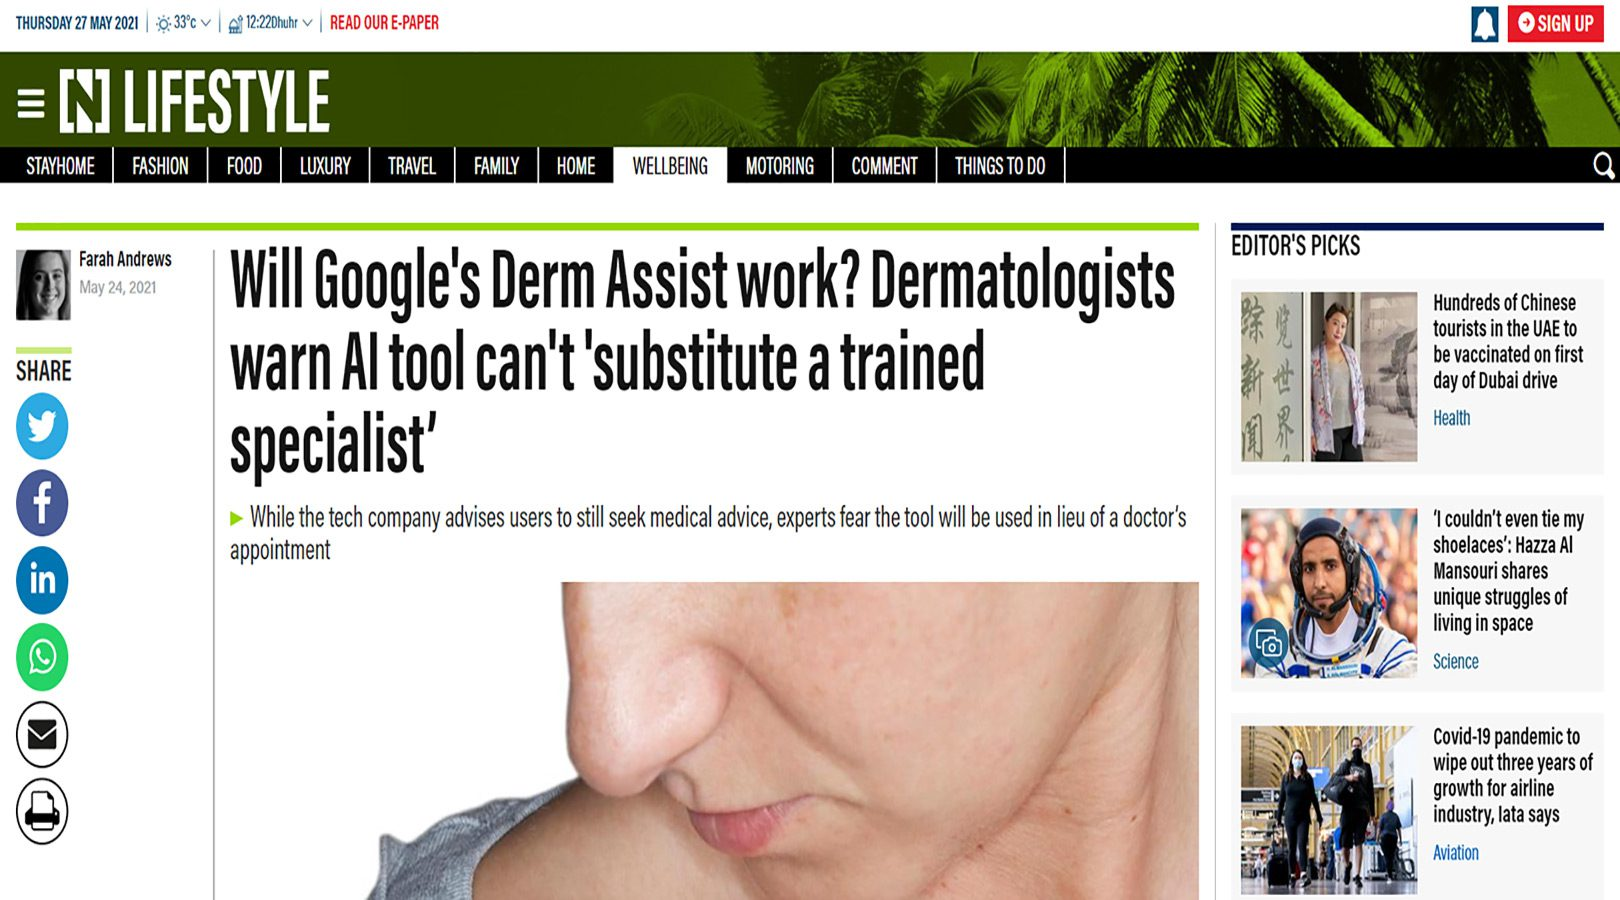 Will Google's Derm Assist work? Dermatologists warn AI tool can't 'substitute a trained specialist'